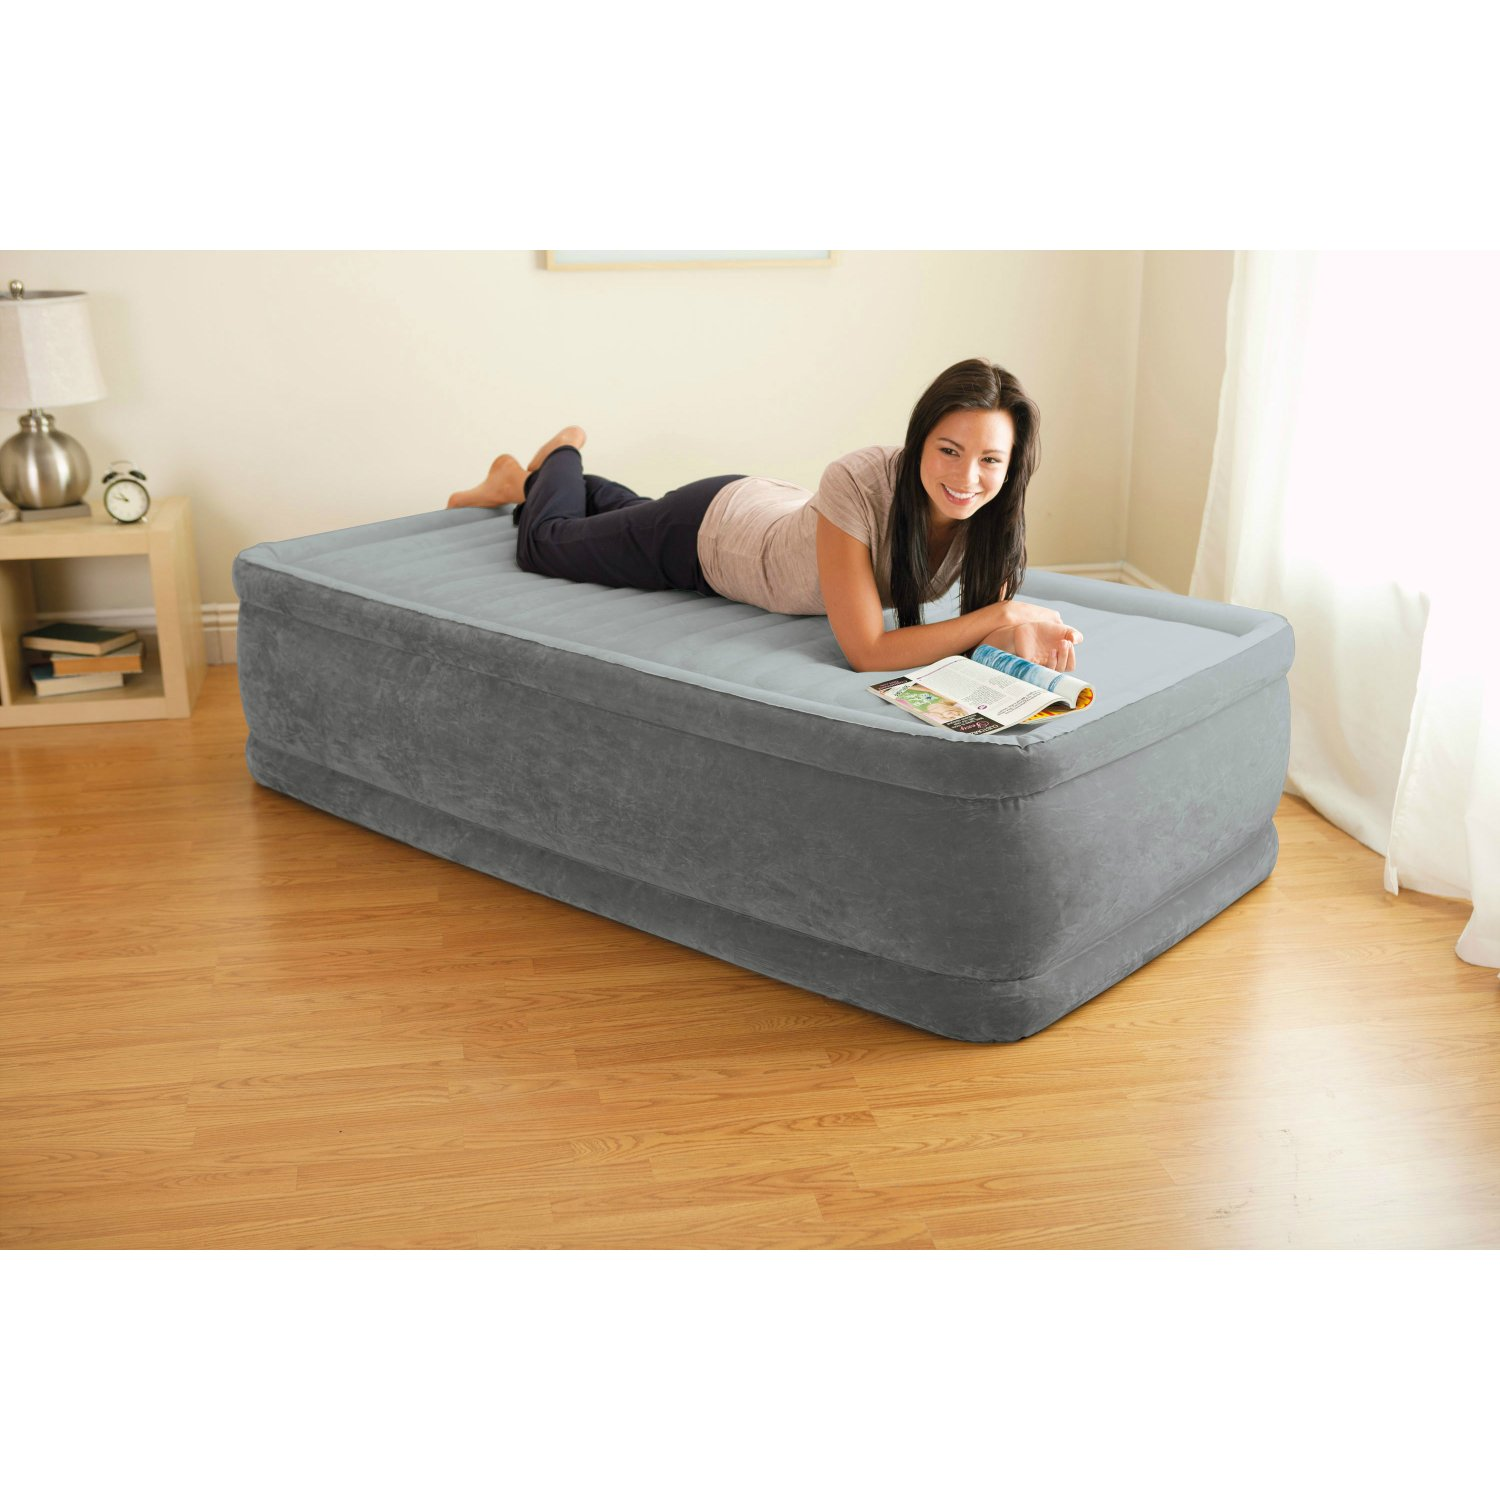 Intex Comfort Plush Elevated Dura-Beam Airbed with Built-in Electric Pump, Bed Height 18'', Twin by Intex (Image #4)